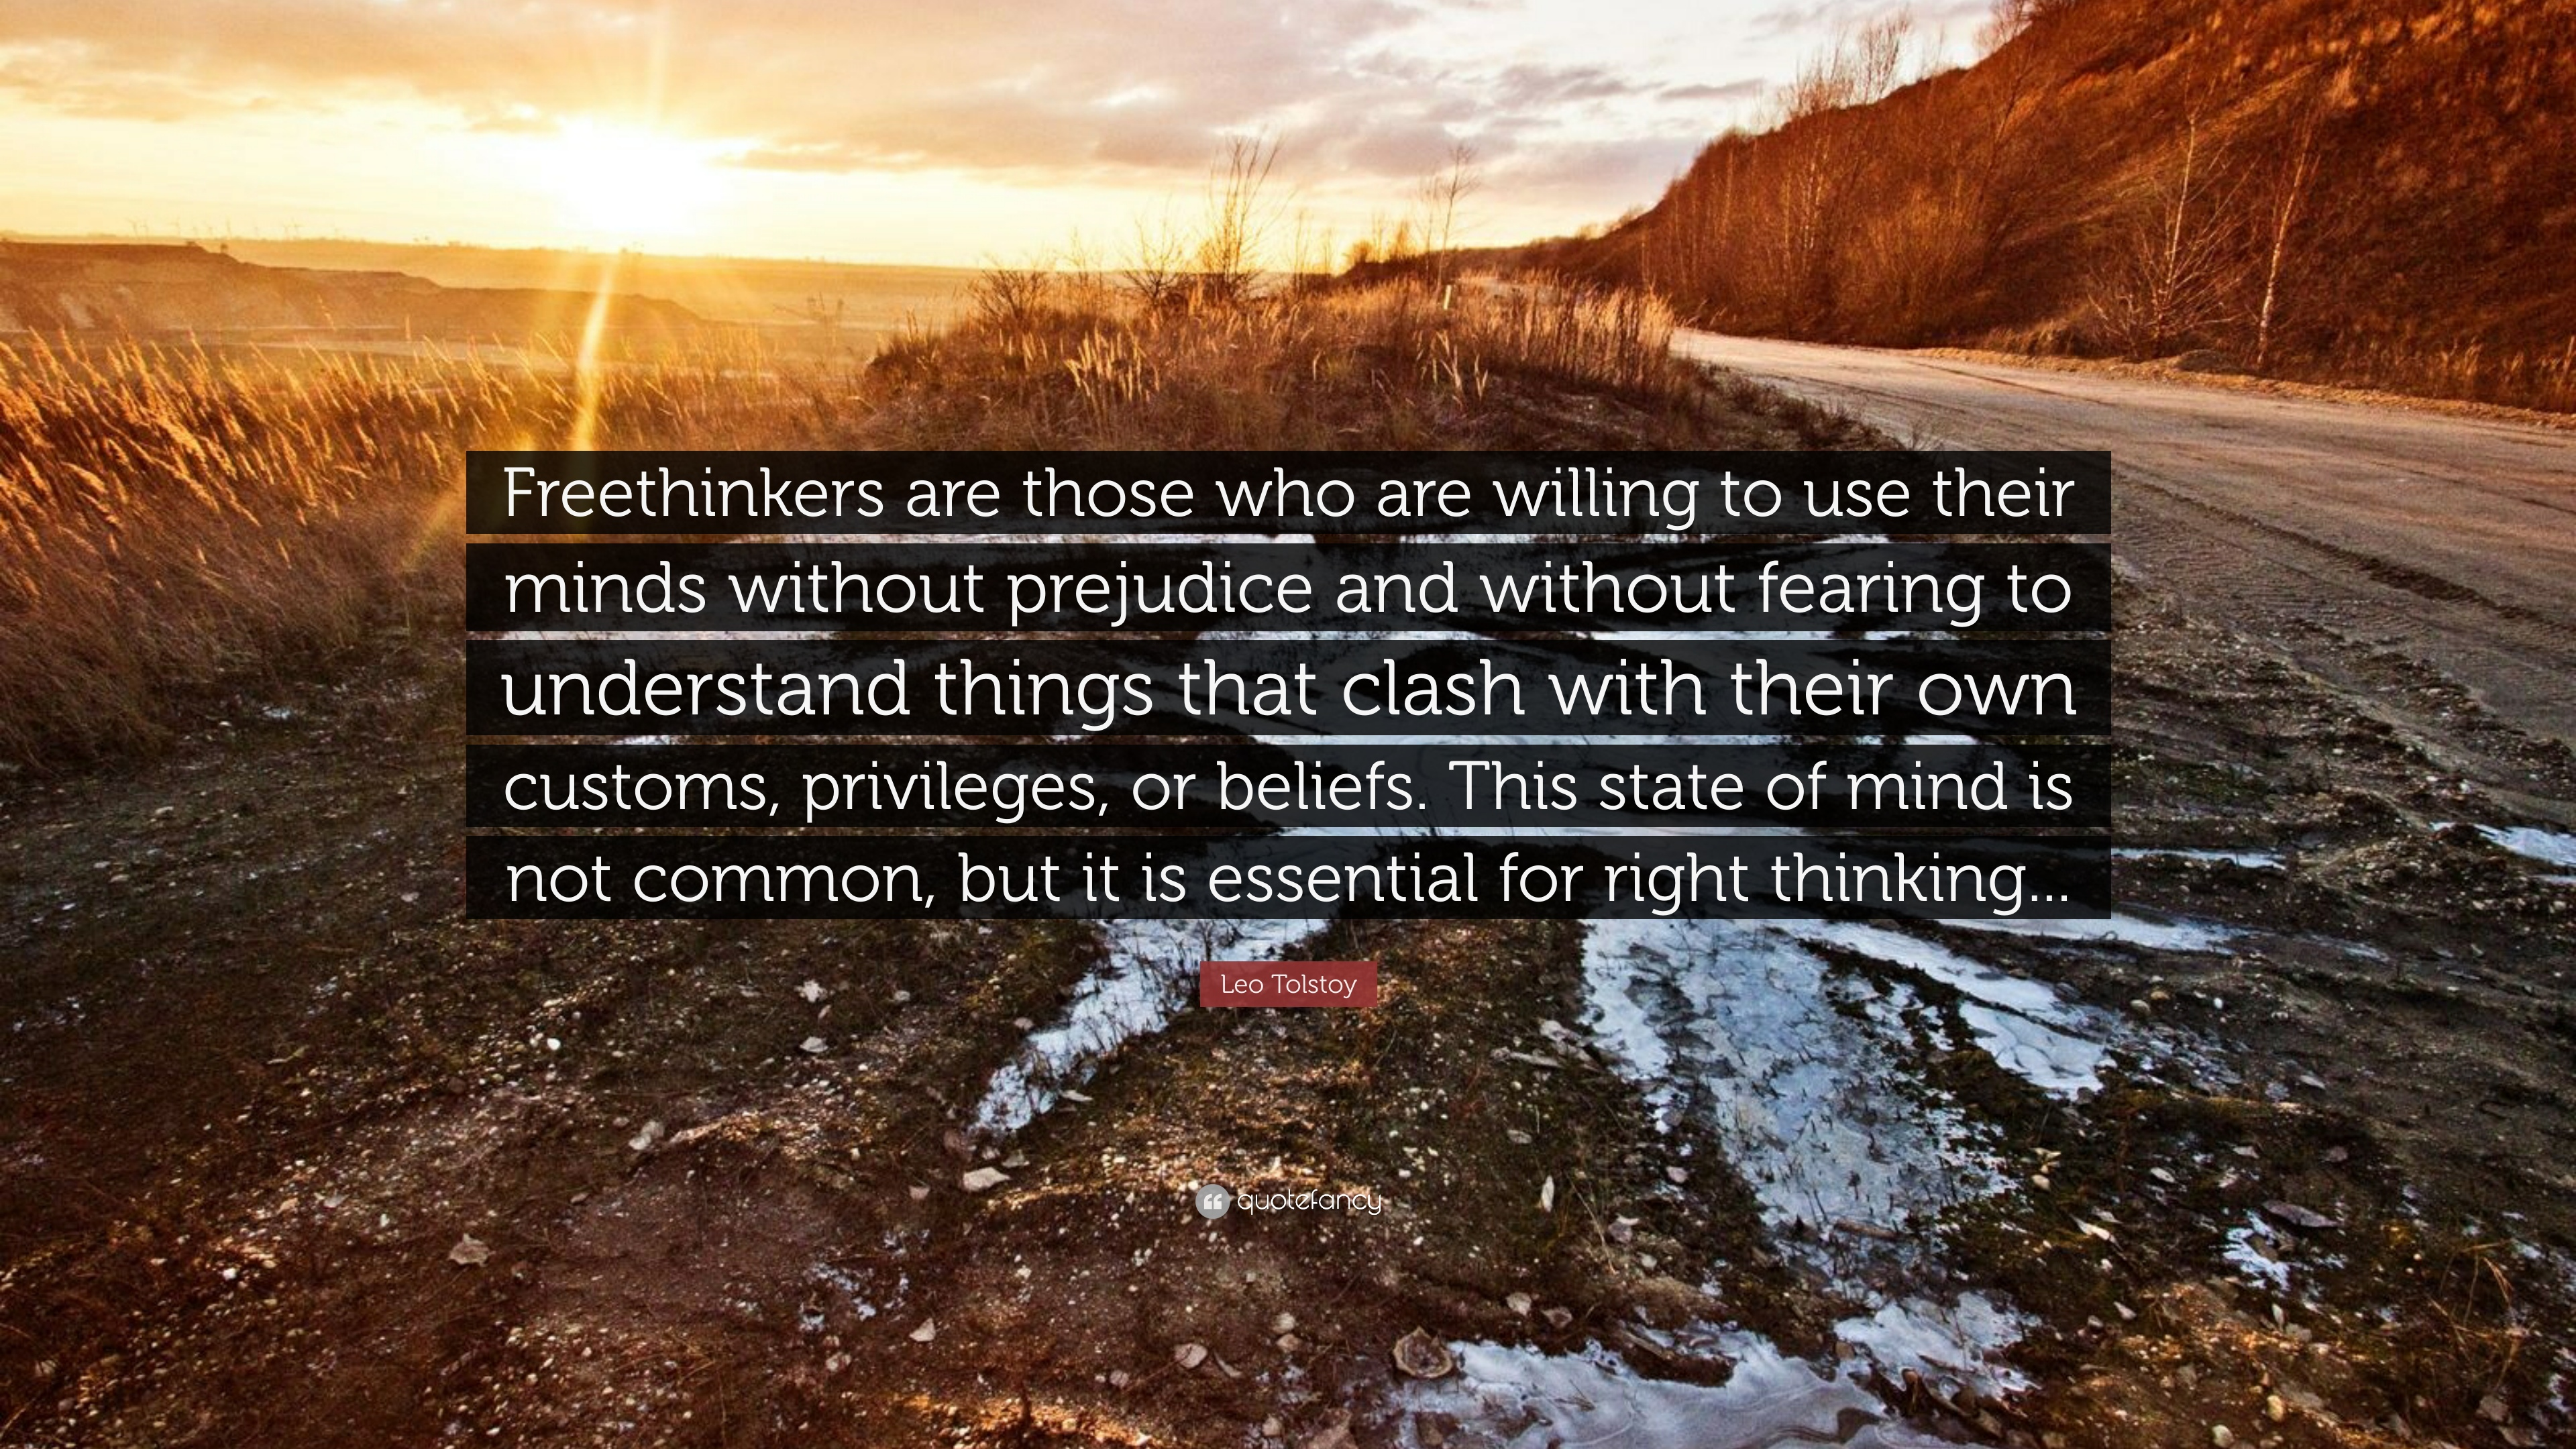 Leo Tolstoy Quote Freethinkers Are Those Who Willing To Use Their Minds Without